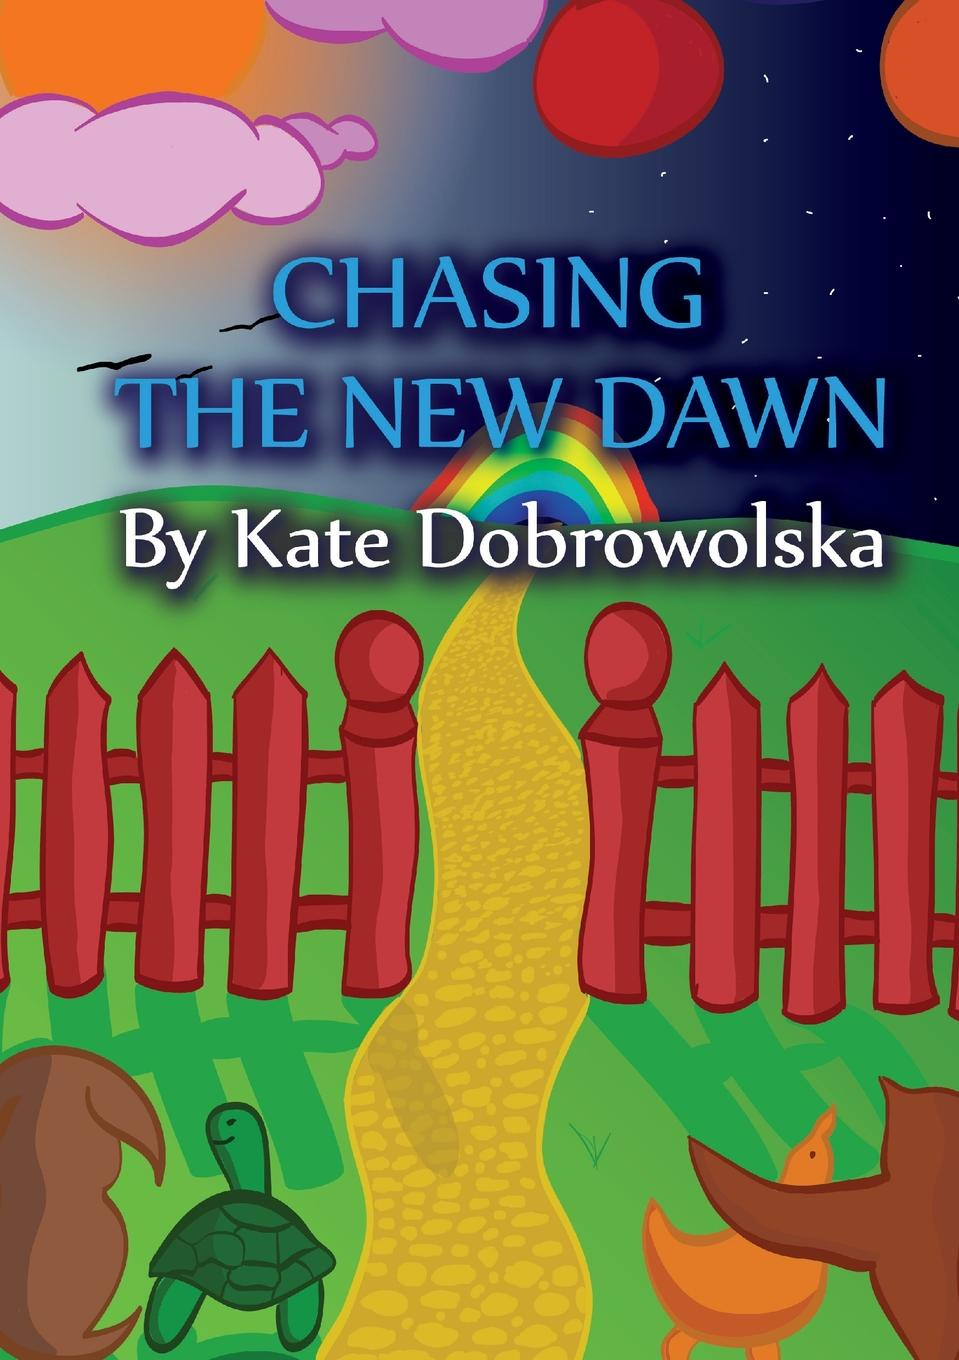 Kate Dobrowolska, Heather J. K. Brown Chasing the New Dawn. A Trilogy the variety rift dinosaur eggs green red multicolored 4 pcs